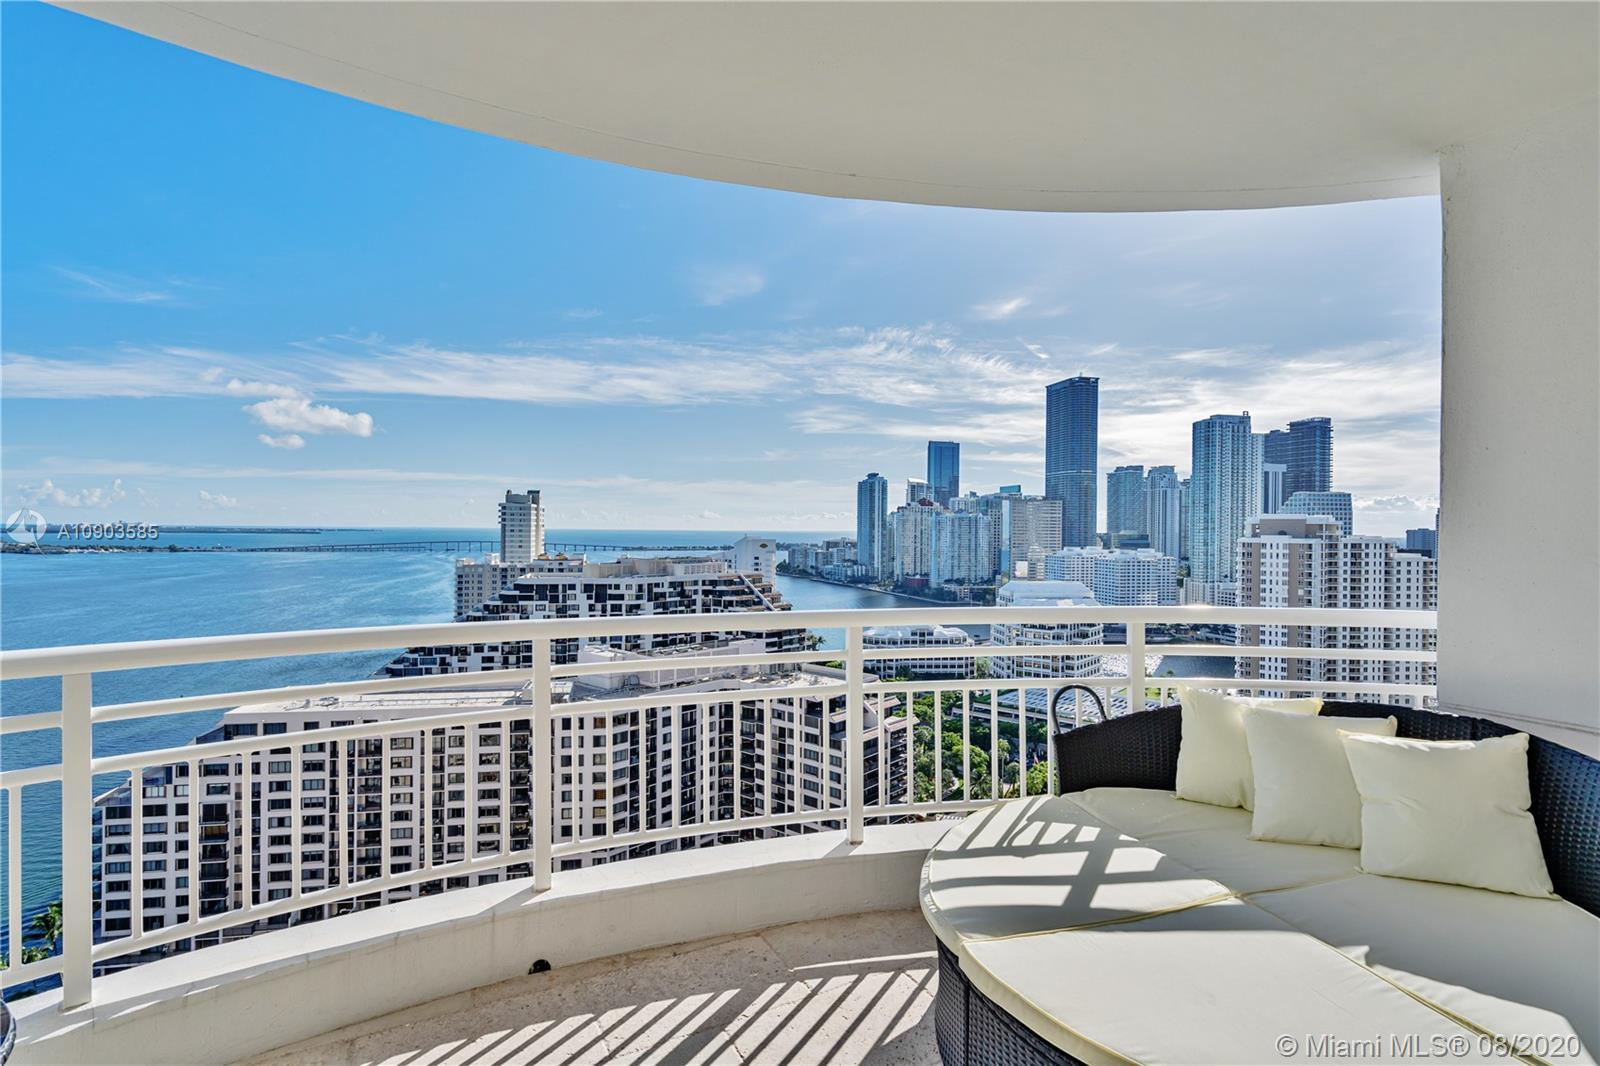 Fully furnished and spacious 1/1/1 with 1,087 sq/ft, stunning views of Biscayne Bay, Brickell and Br